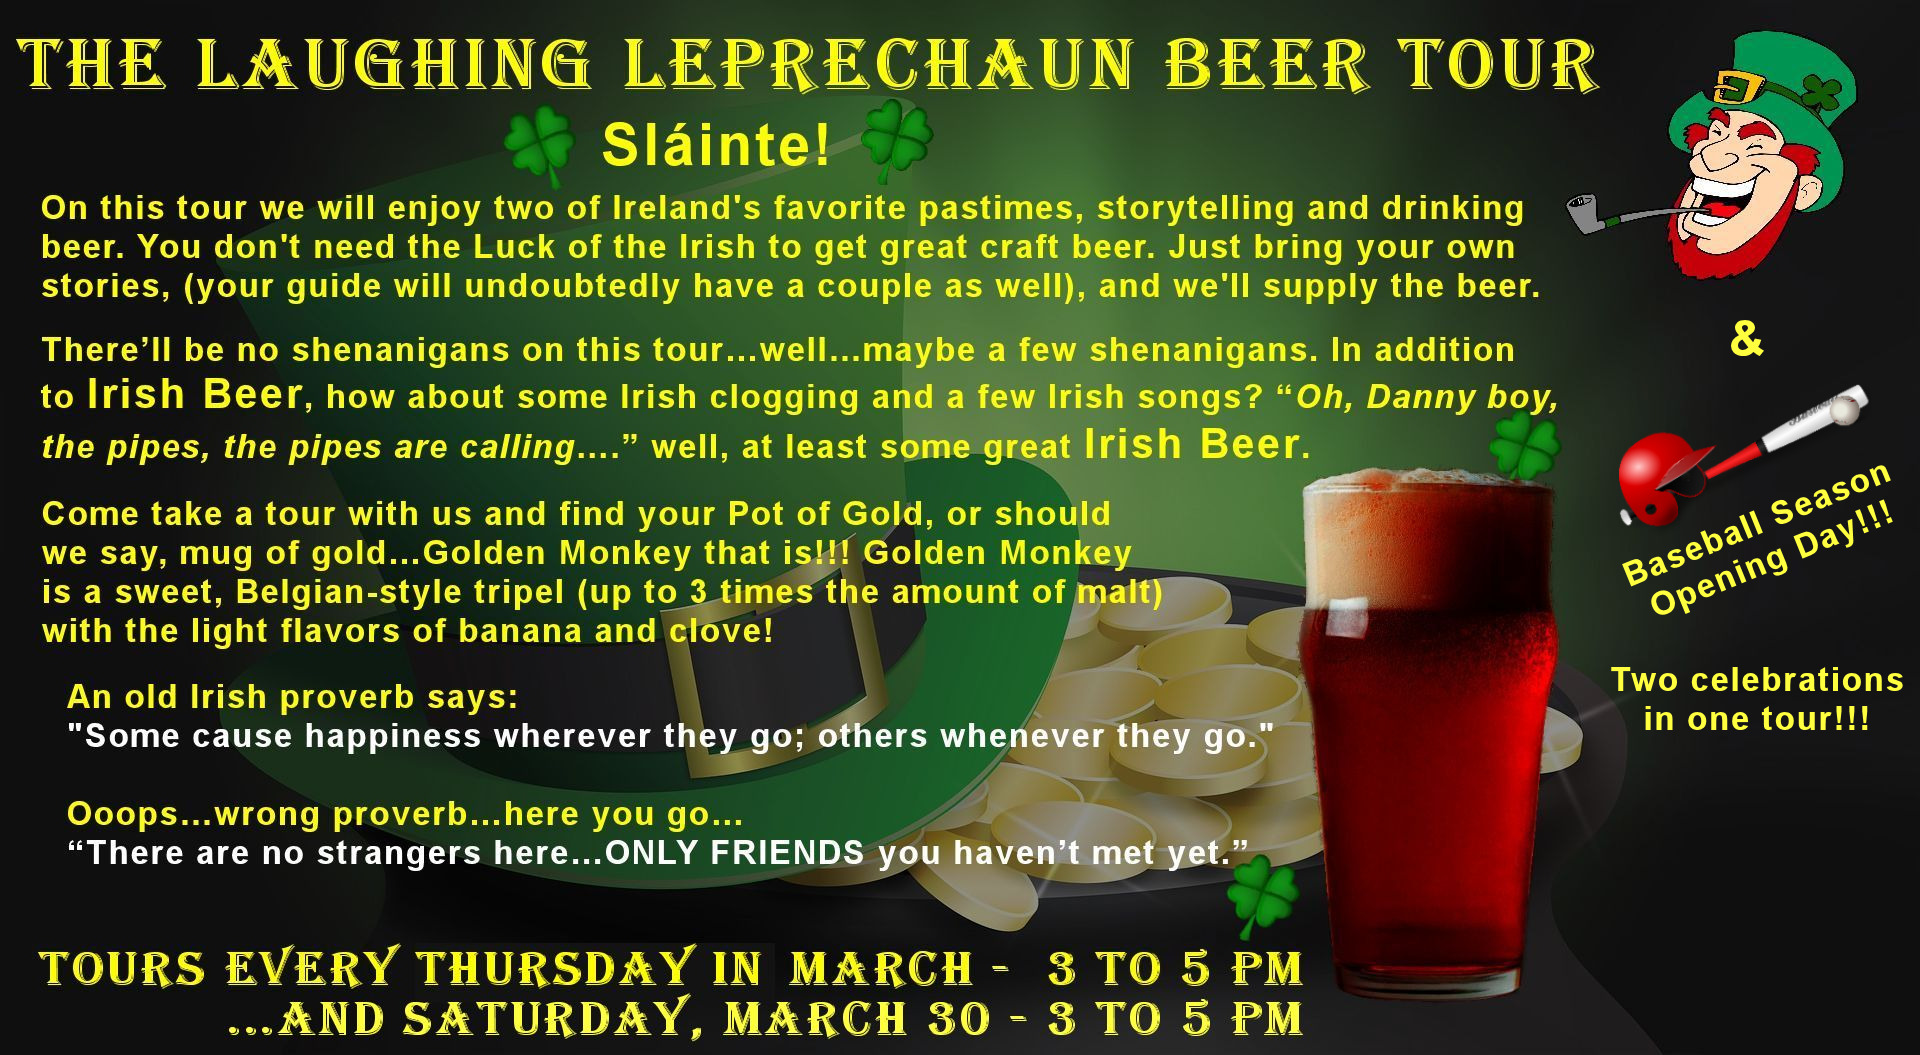 St. Paddys Day & Baseball - Beer Tour